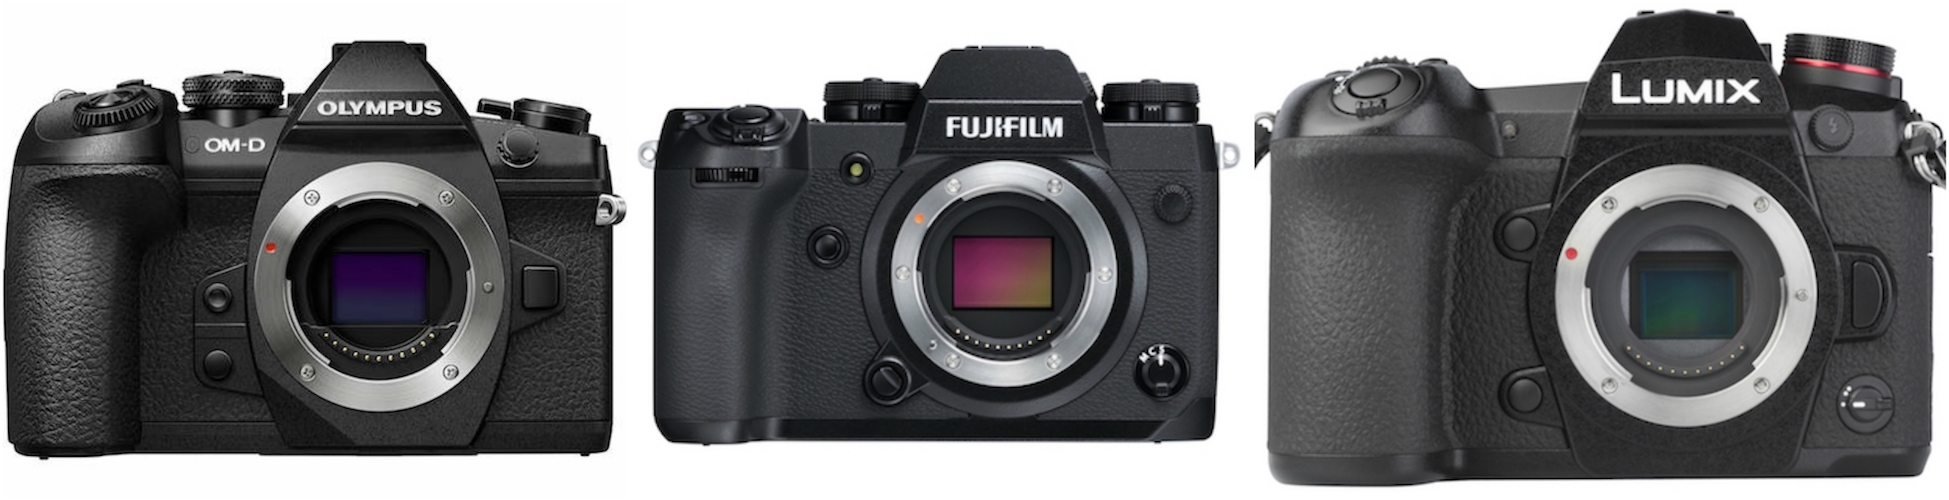 Fujifilm X-H1 vs. Olympus OM-D E-M1 Mark II vs. Panasonic G9